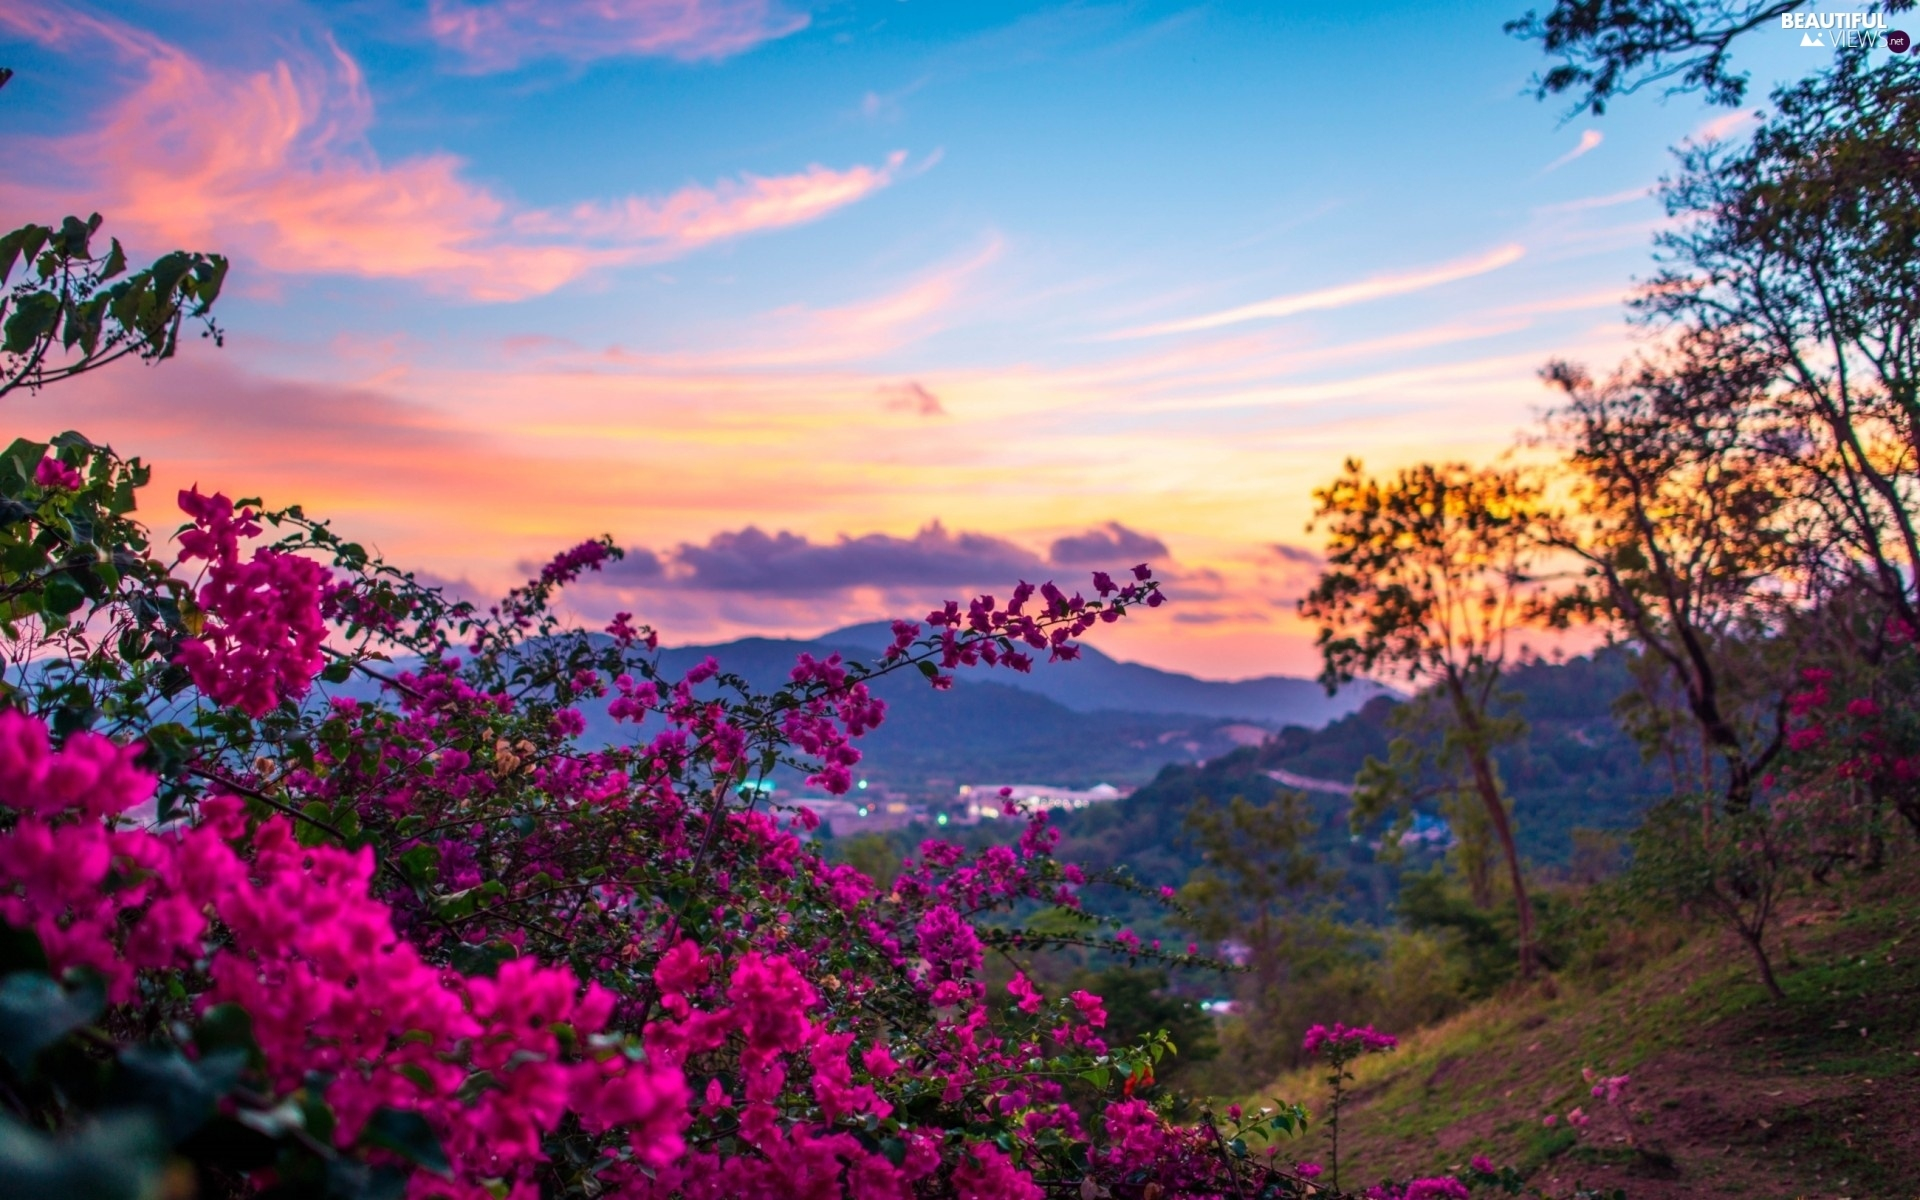 west, The Hills, pink Flowers, sun - Beautiful views wallpapers: 1920x1200